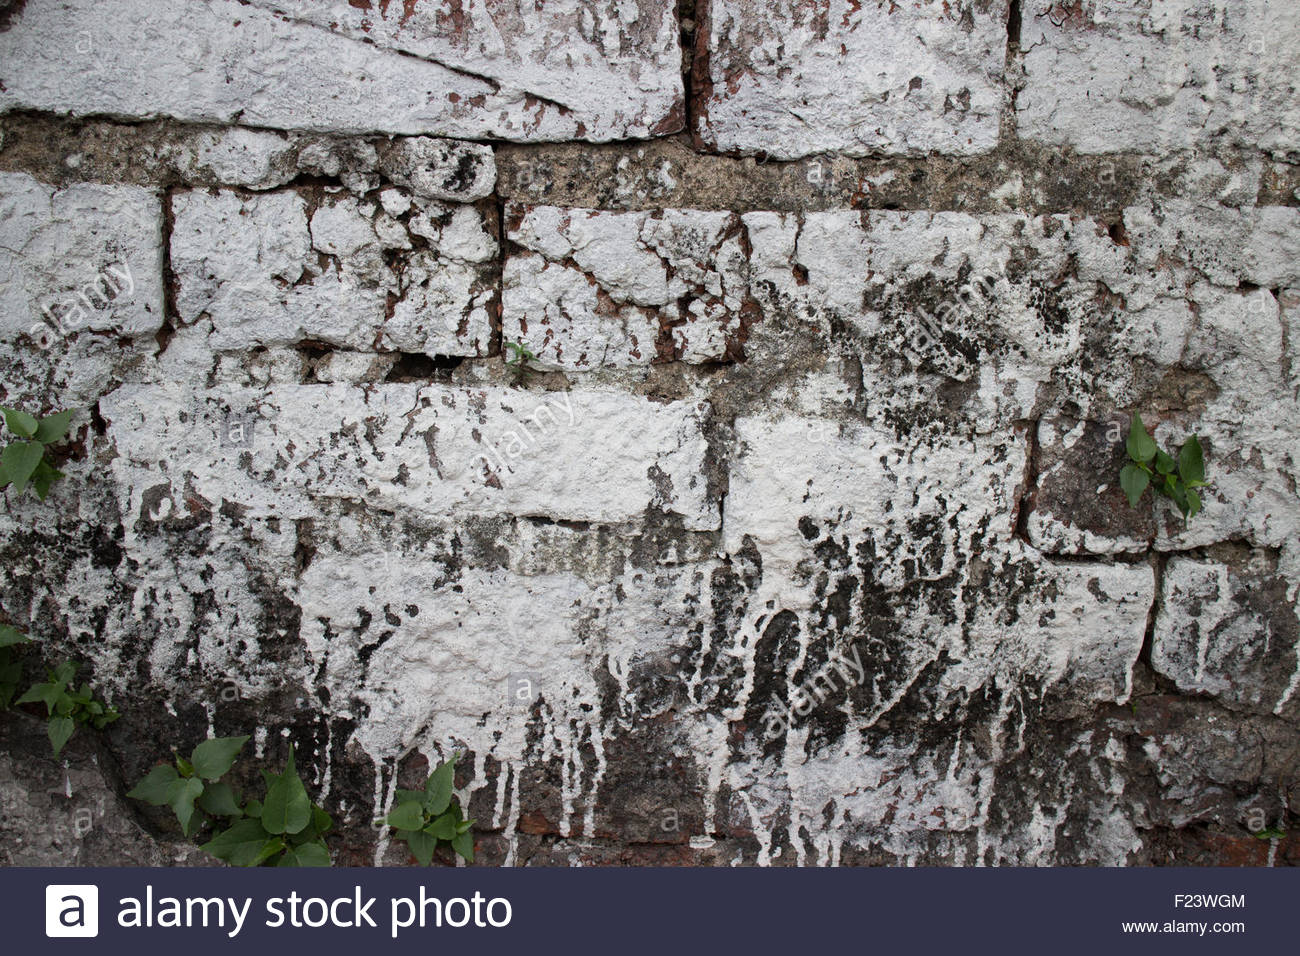 medium close up of an old brick wall at a former prison in Asia hastily and  sloppily painted with whitewash paint. - Stock Image